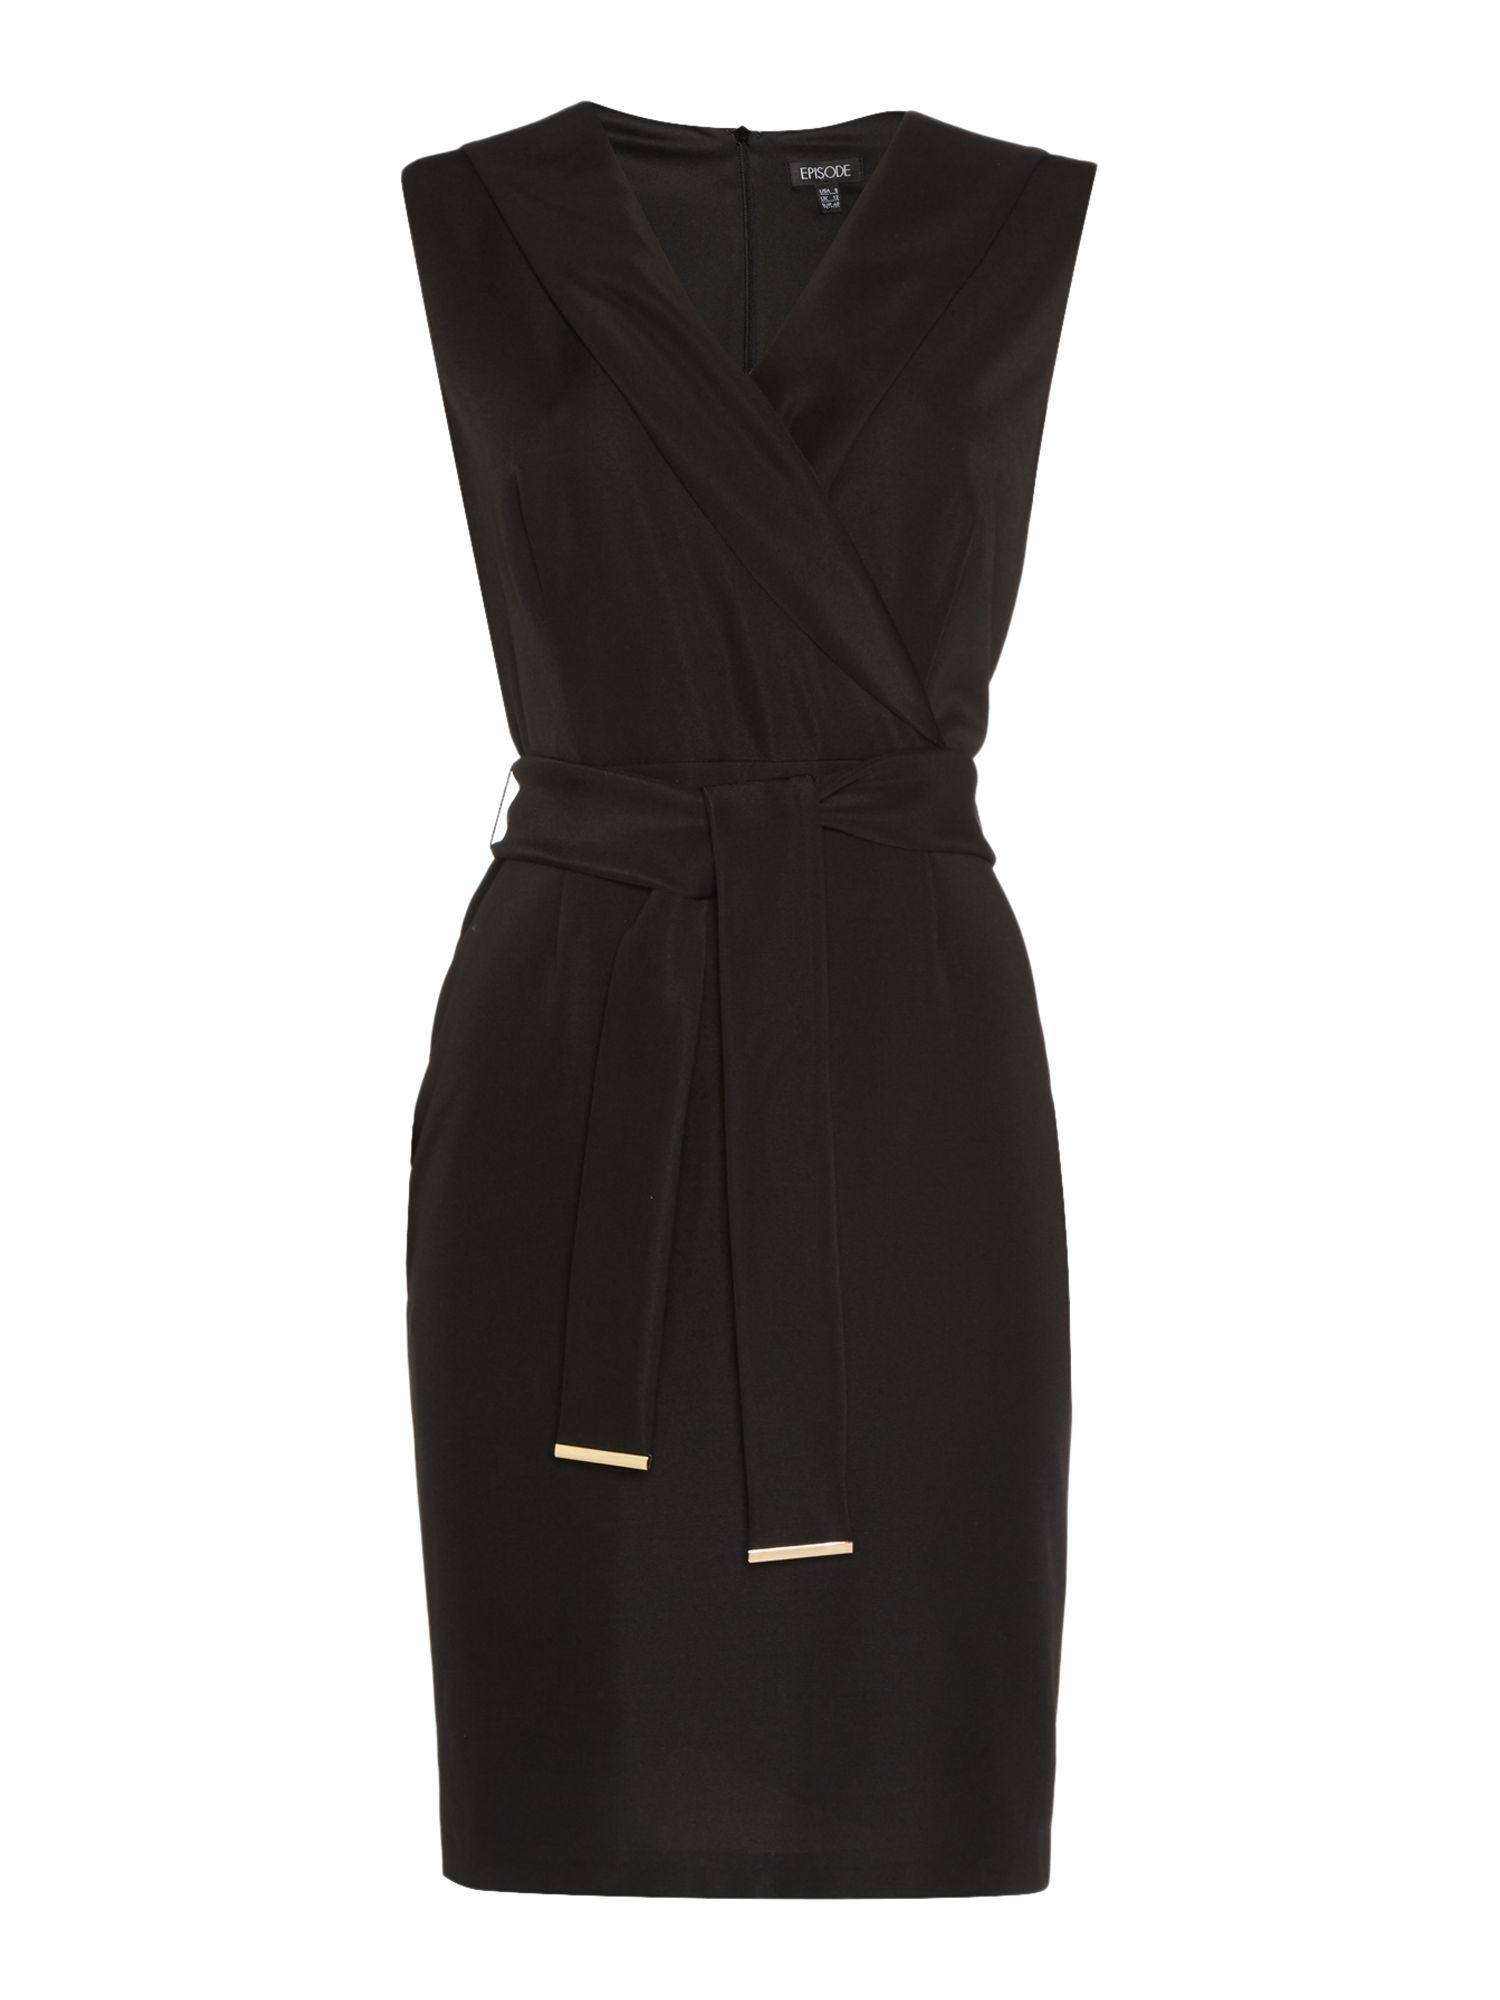 Episode Episode Structured ribbed lapel pencil dress, Black